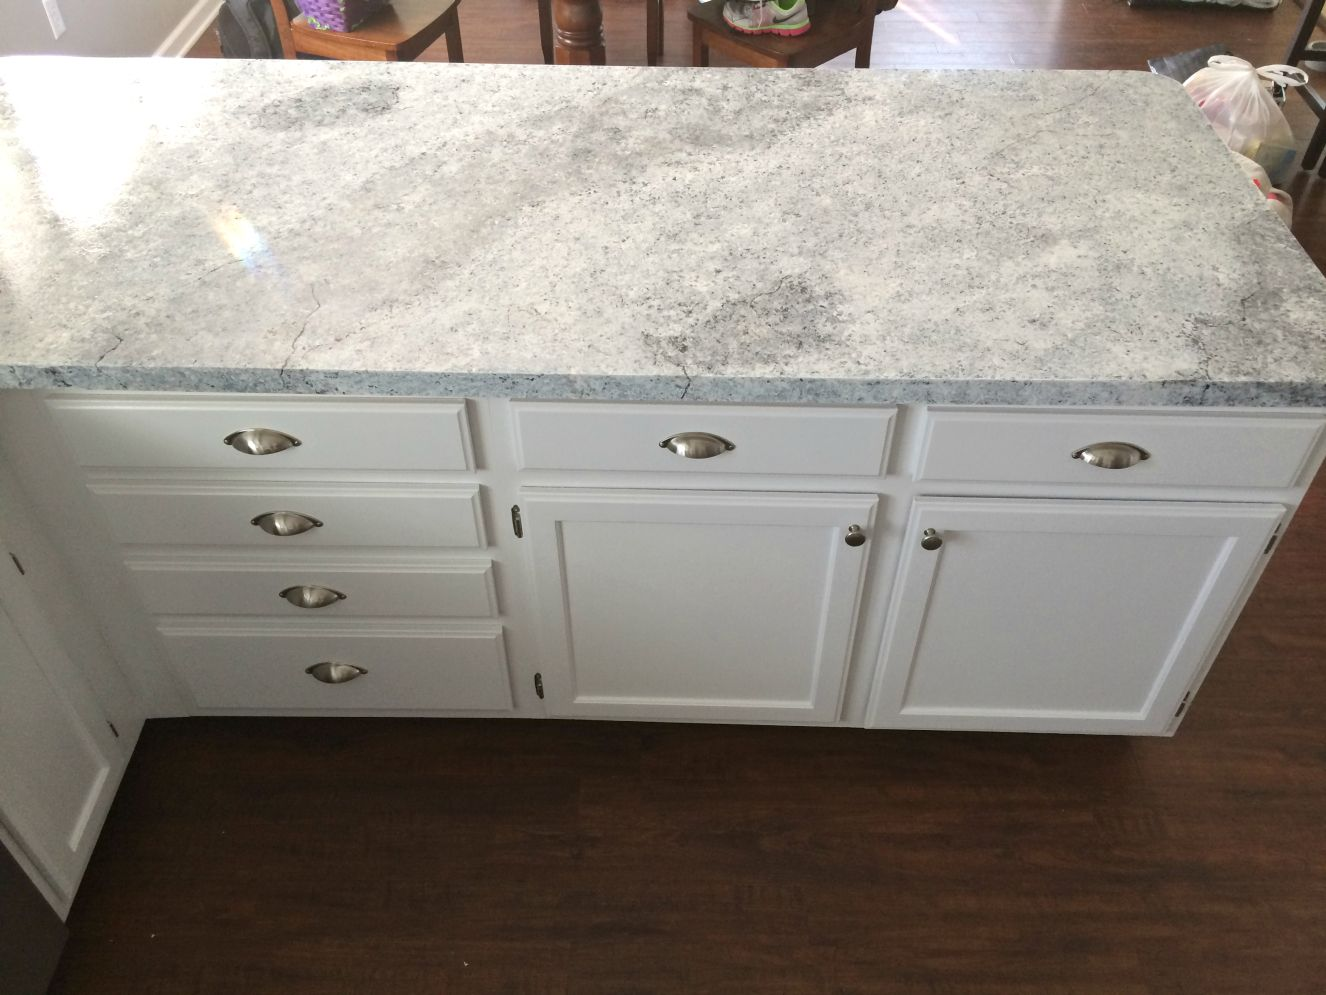 Sponge Painting Countertops Best 25 Faux Granite Countertops Ideas On Pinterest Painted